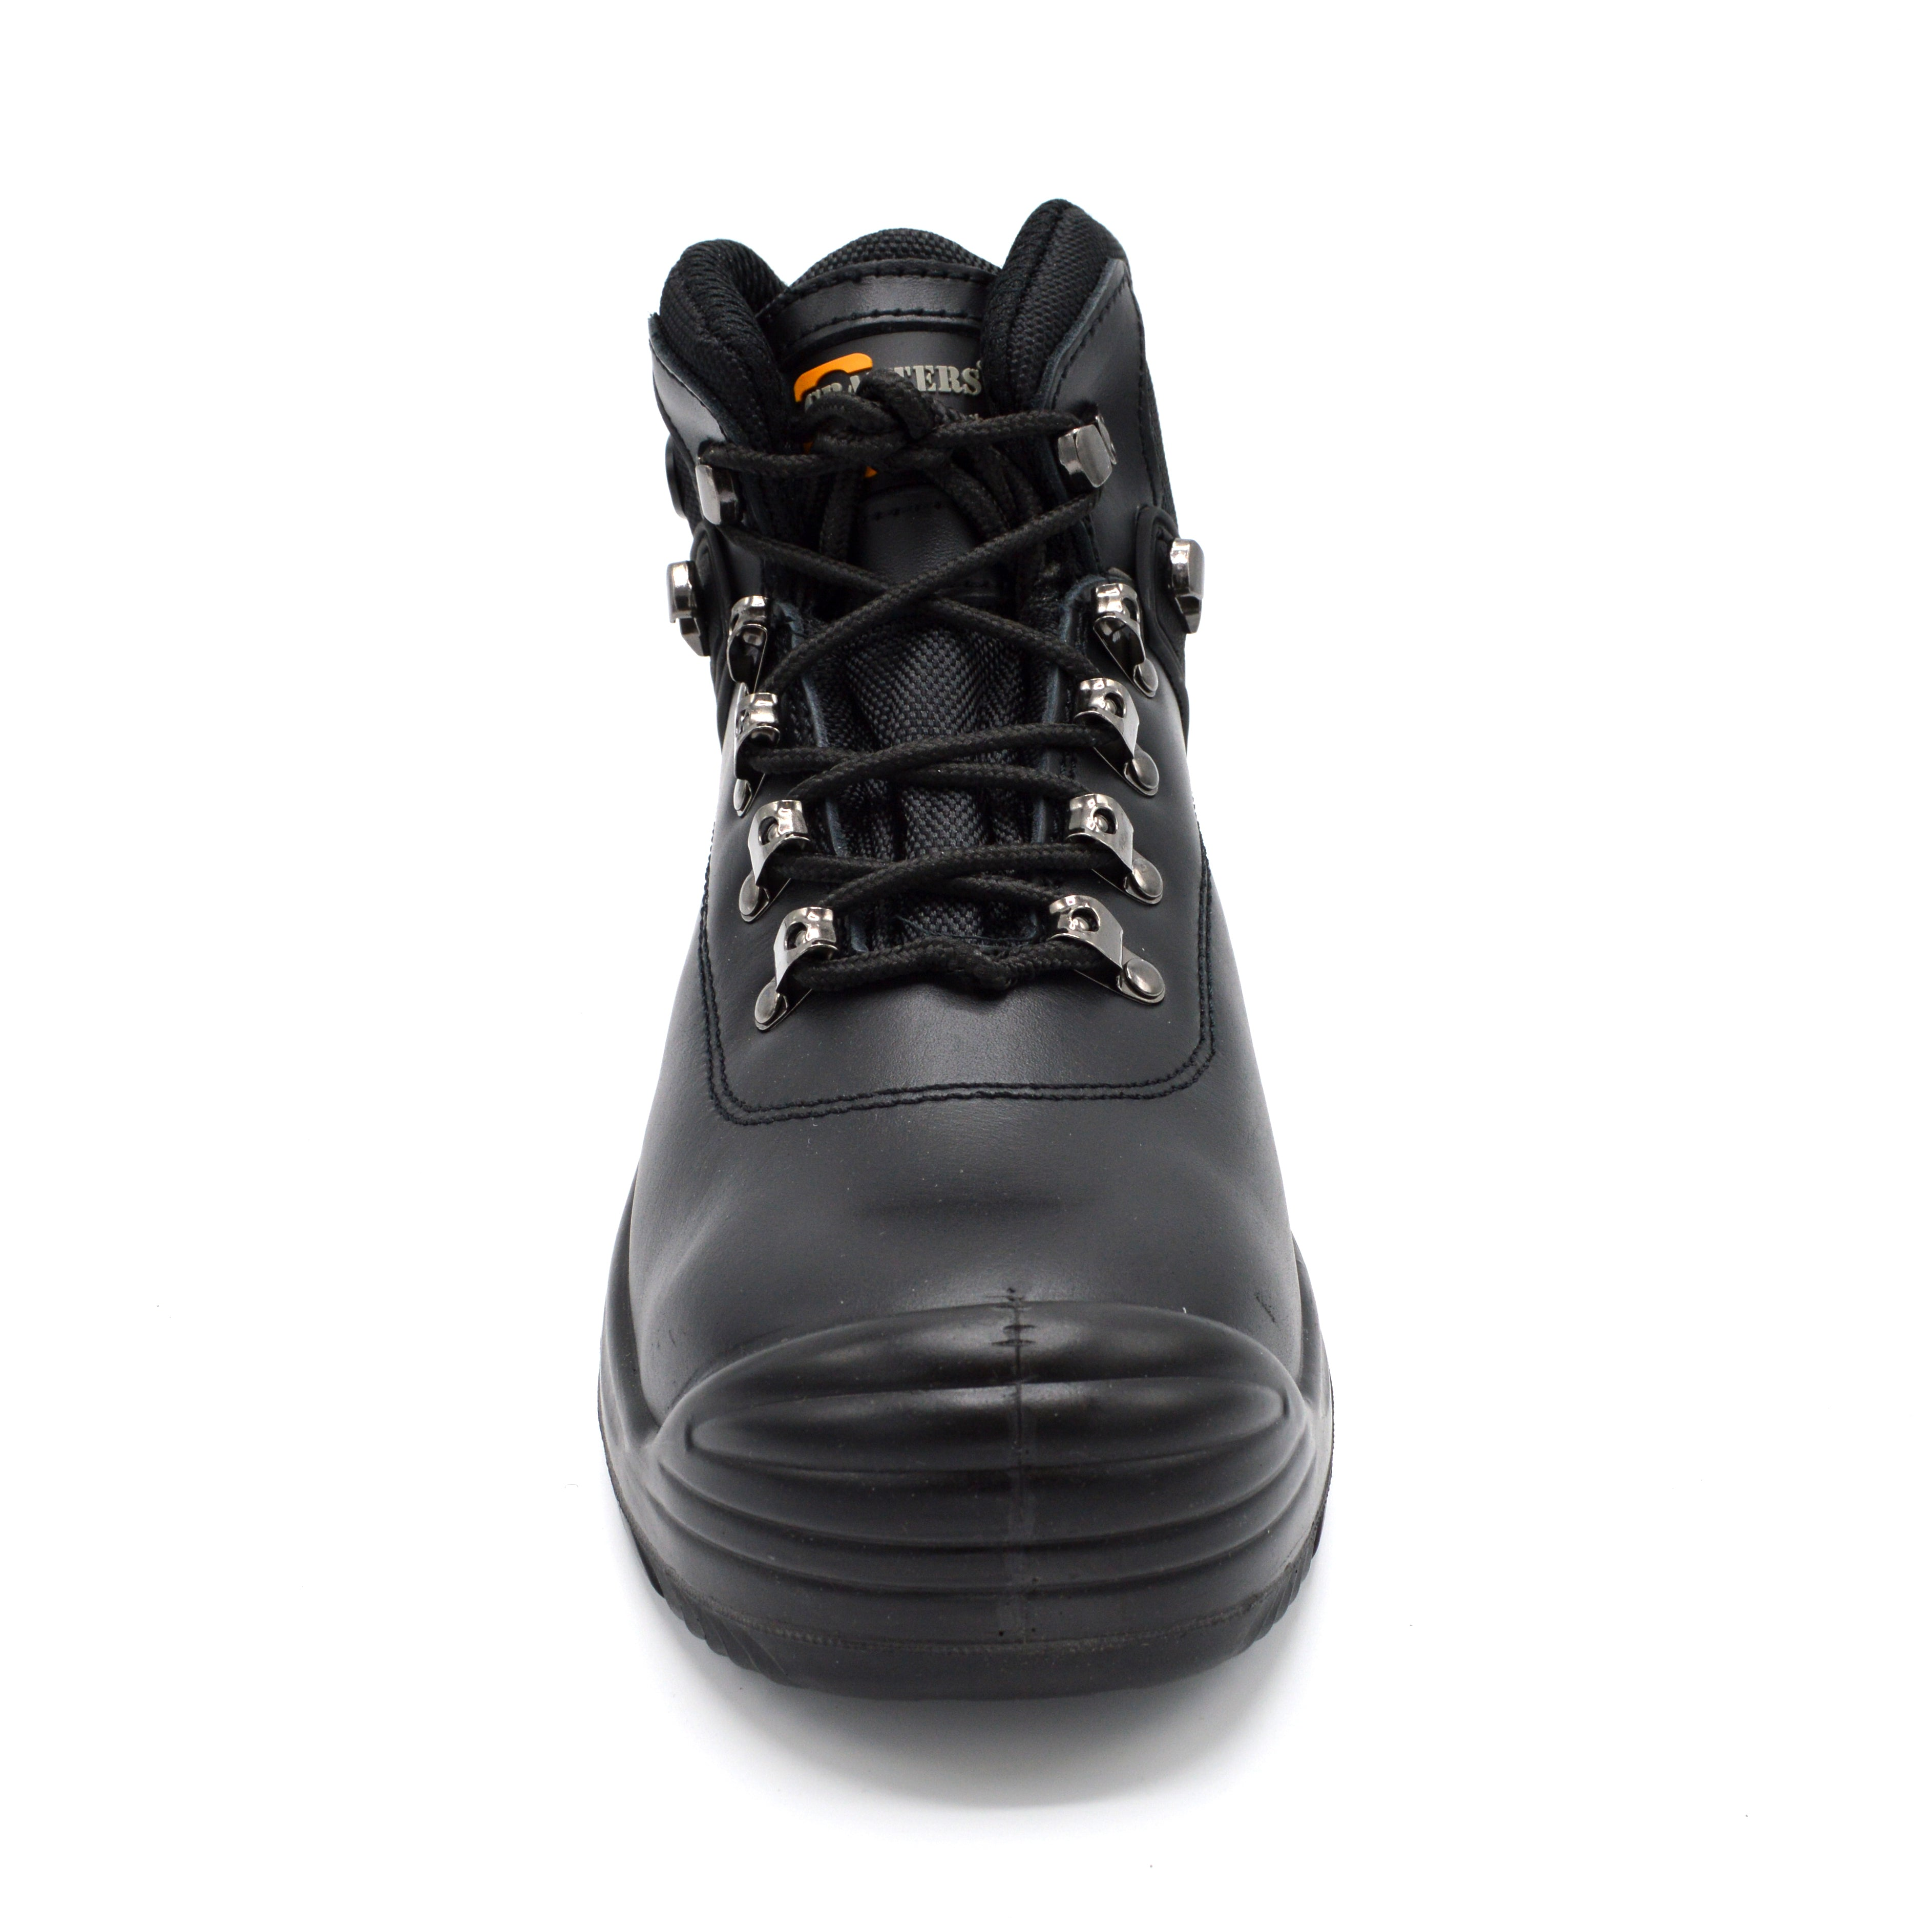 Grafters M9508A Wide Fit Safety Boot - Black - 3E Fitting